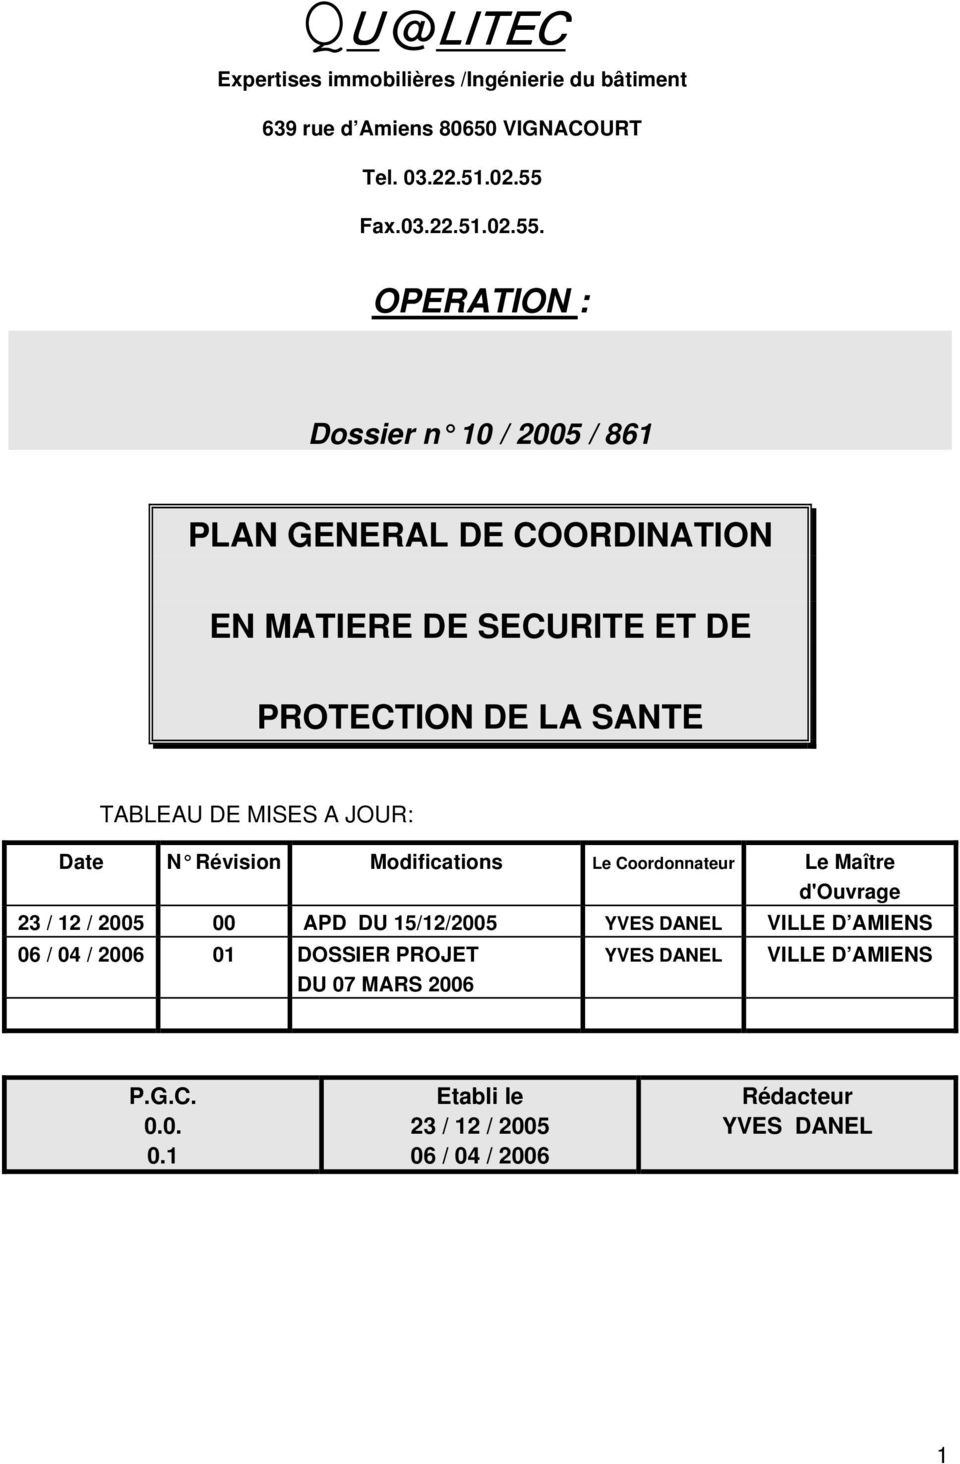 OPERATION : Dossier n 10 / 2005 / 861 PLAN GENERAL DE COORDINATION EN MATIERE DE SECURITE ET DE PROTECTION DE LA SANTE TABLEAU DE MISES A